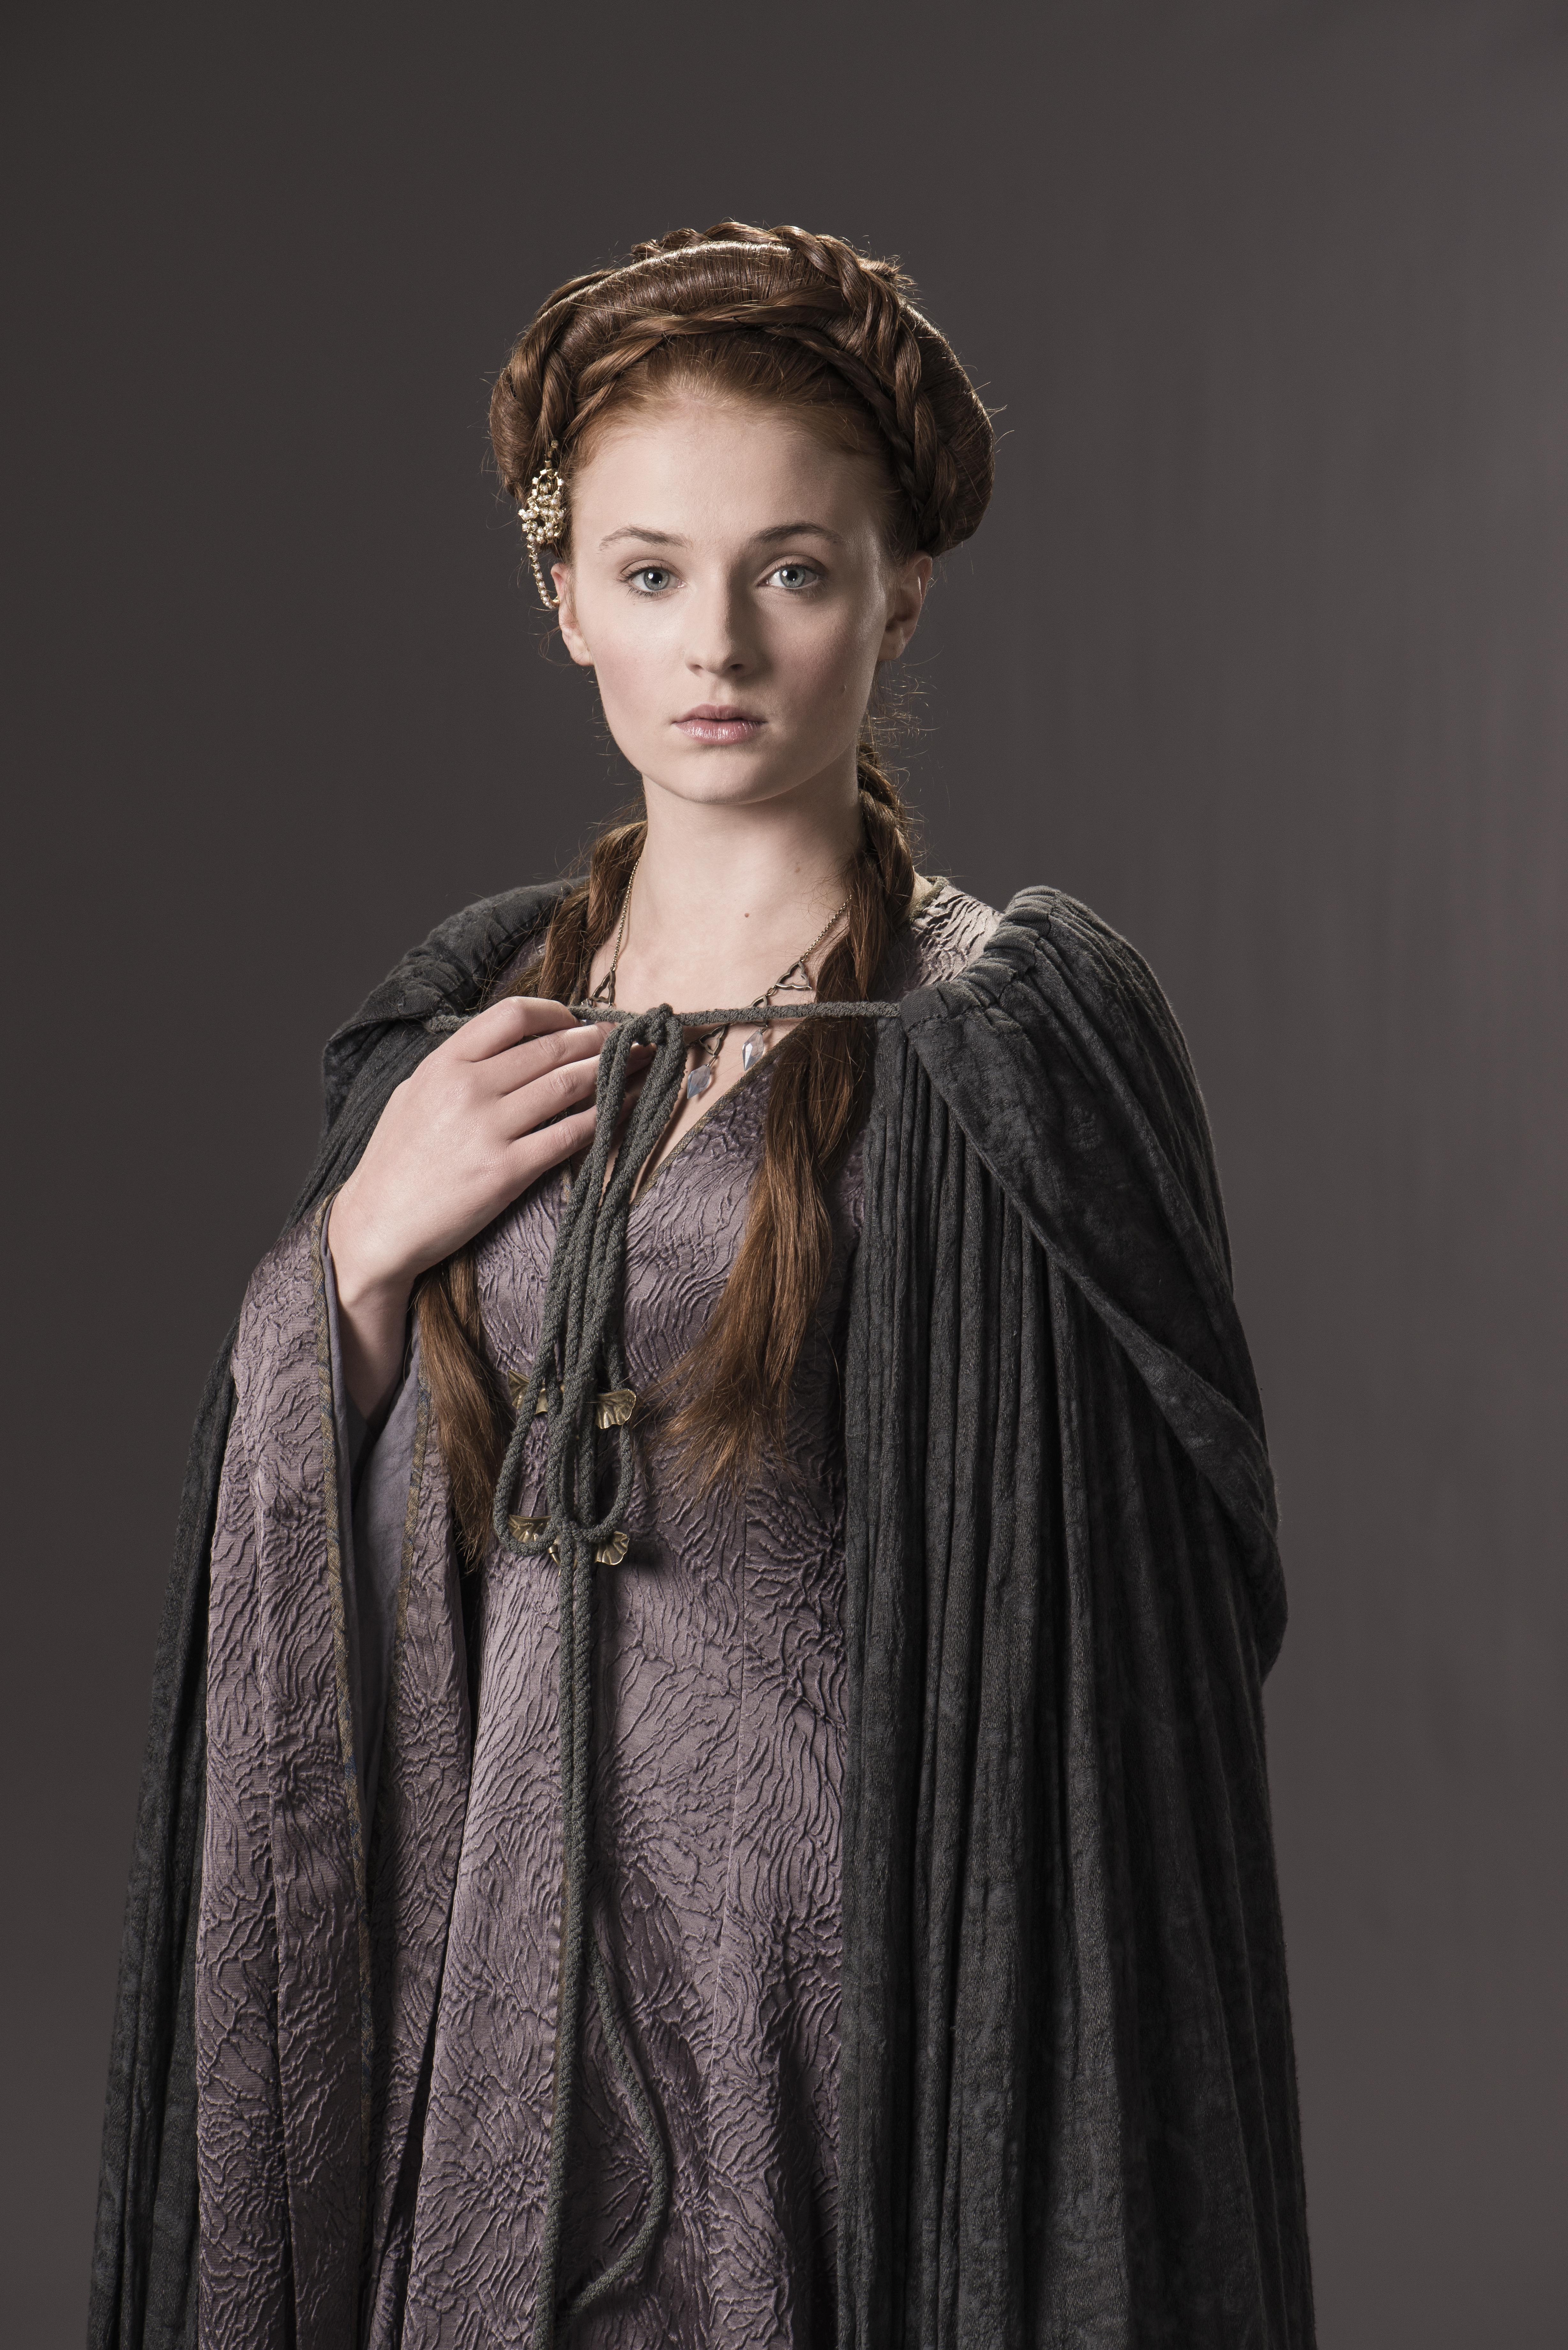 Game of Thrones - Season 4 - Cast Photo - Game of Thrones ...Game Of Thrones Cast Season 4 Cast